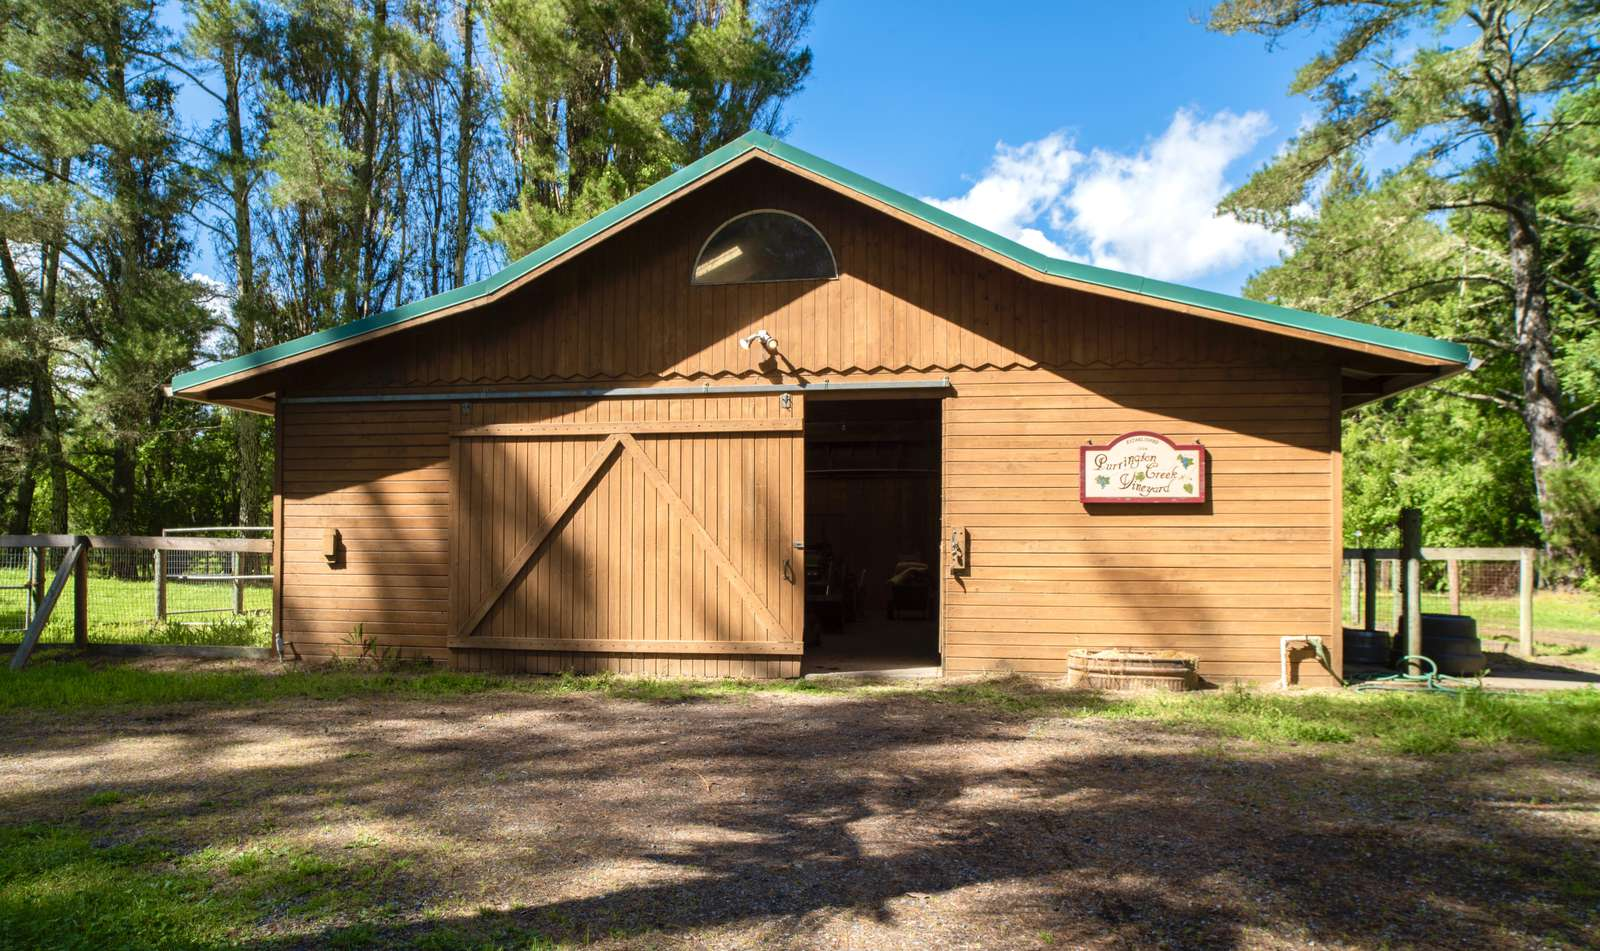 Winemaking barn & stables